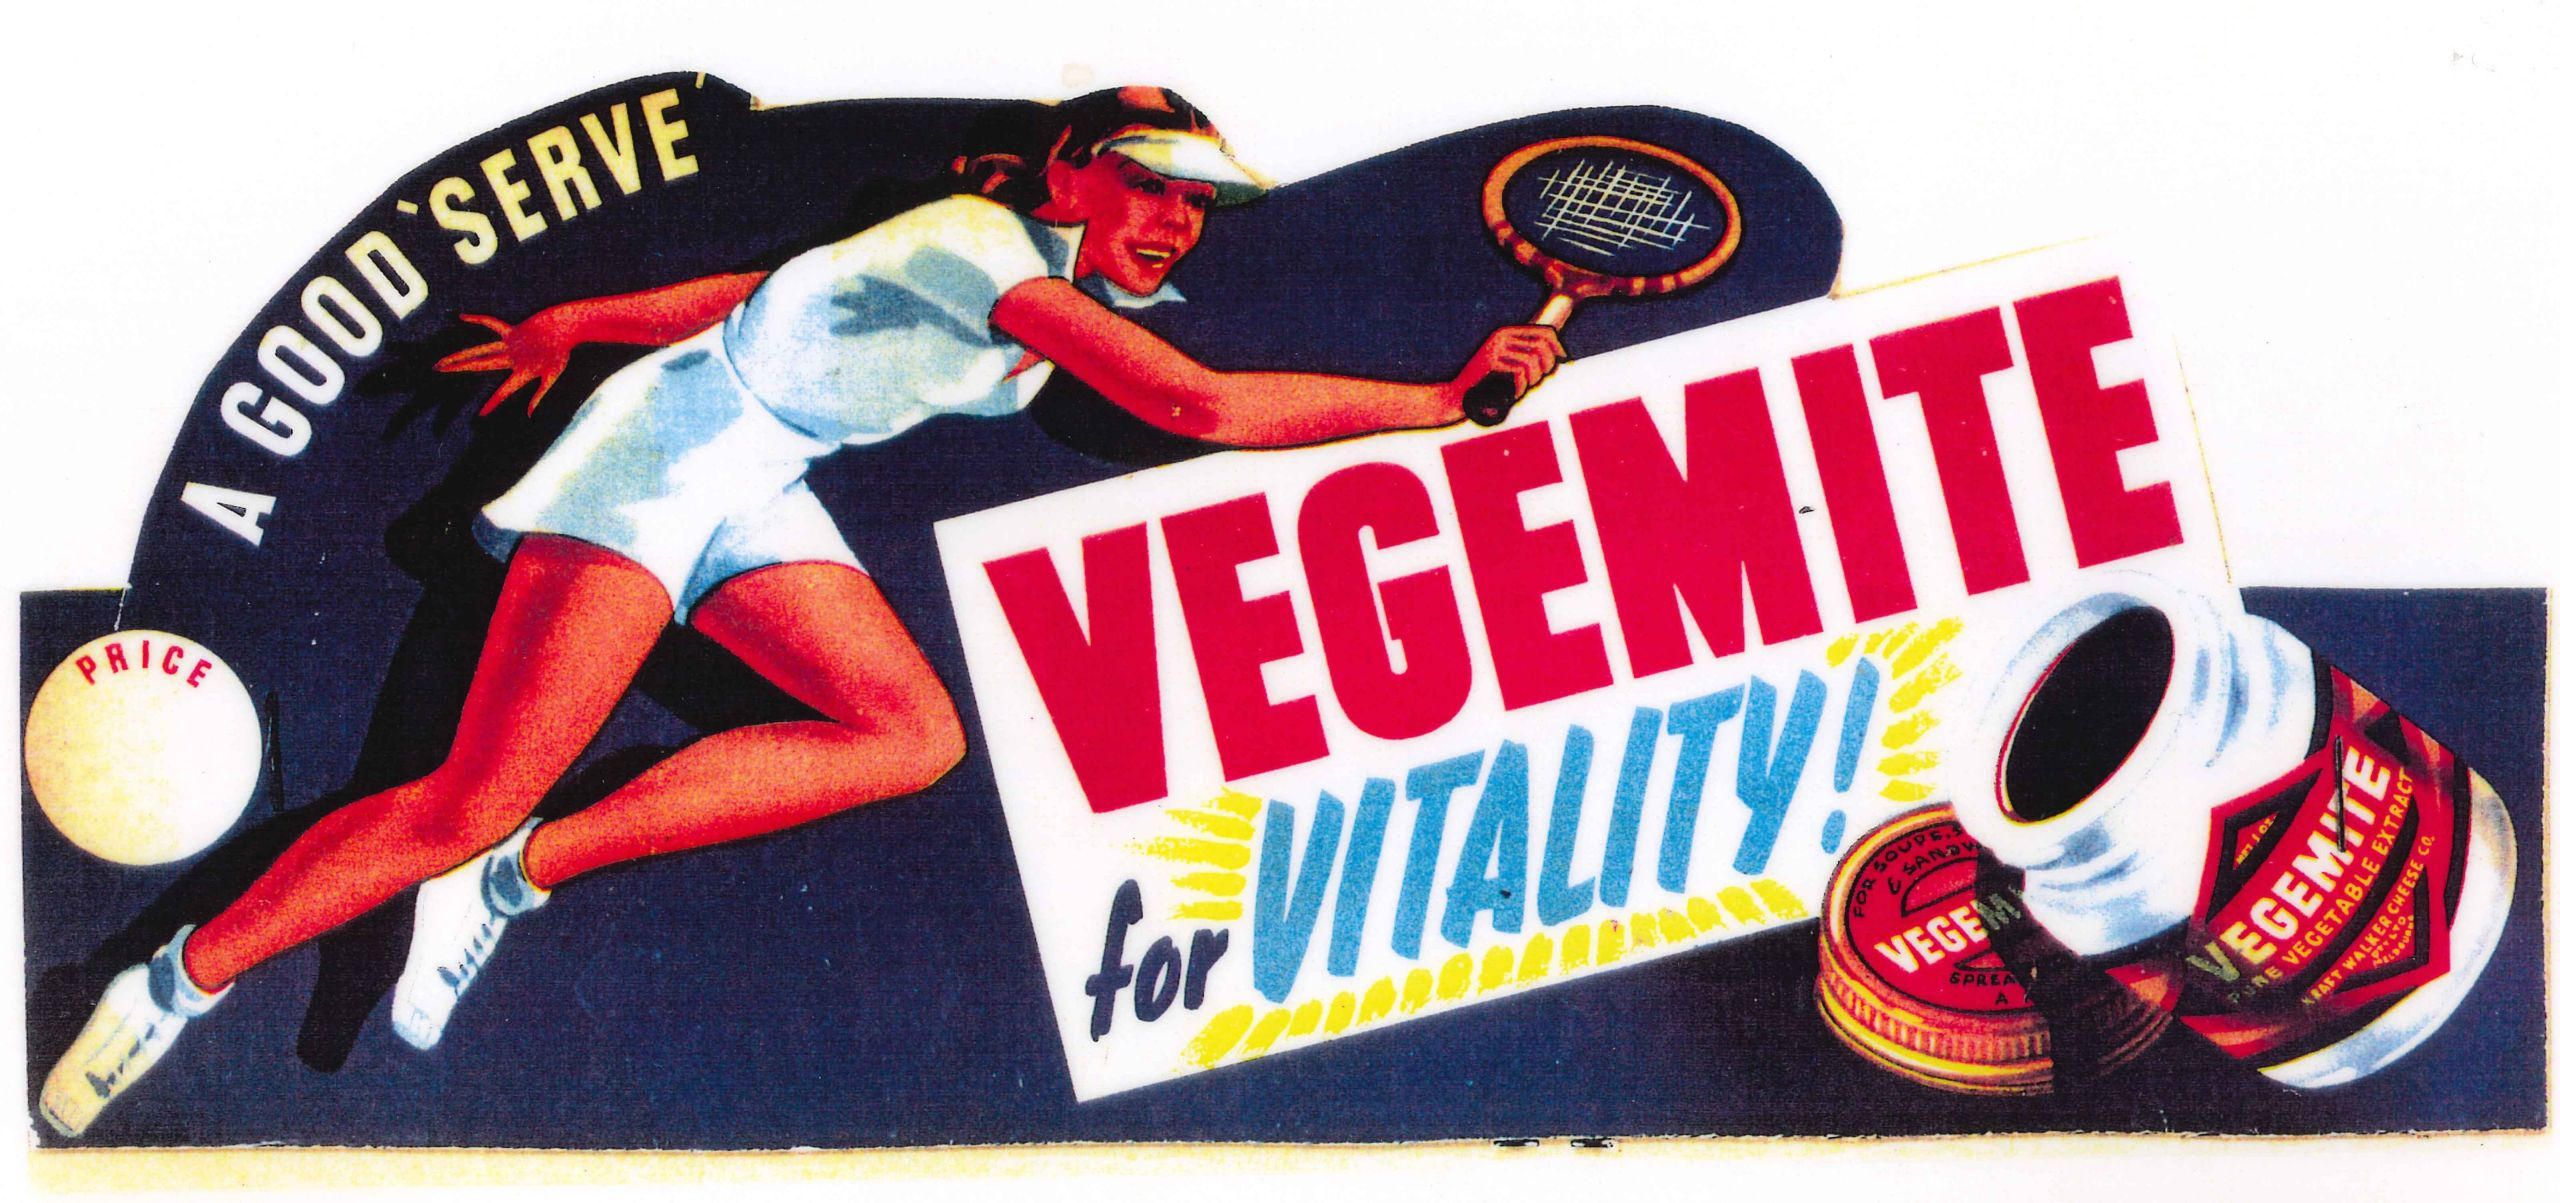 Vegemite in the 30s.